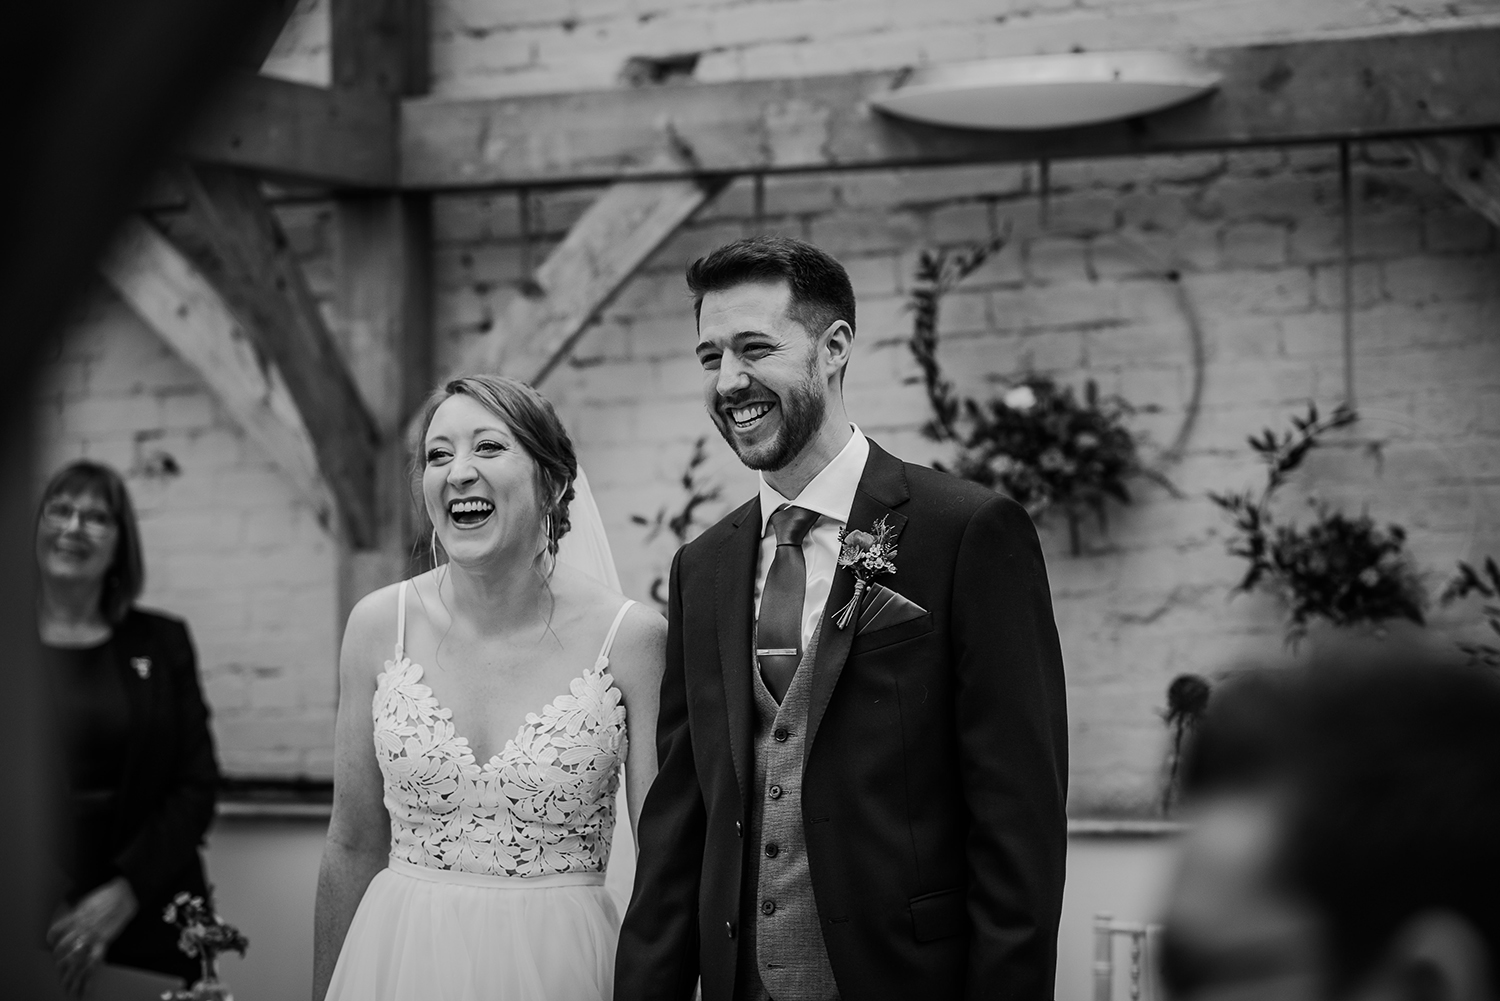 BW photo. Bride and groom laughing